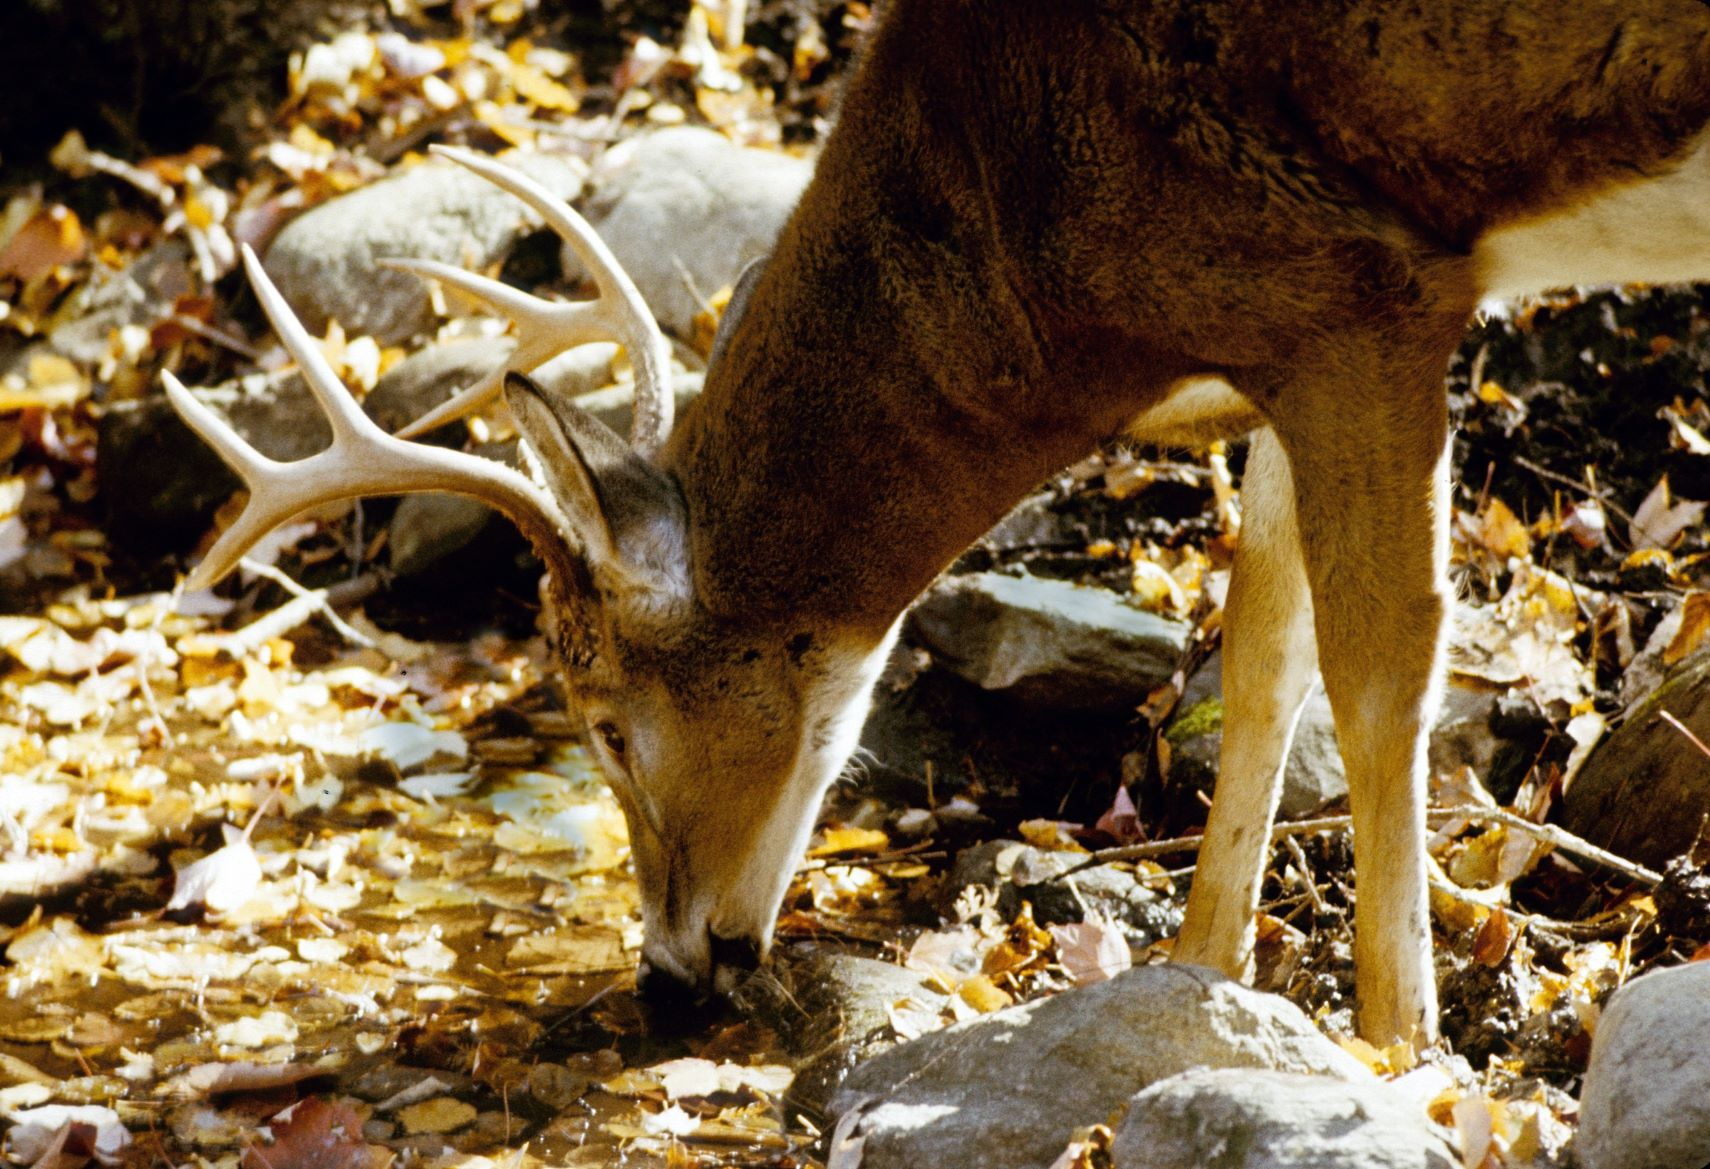 The autumn hunt -- both a tradition and a controversy